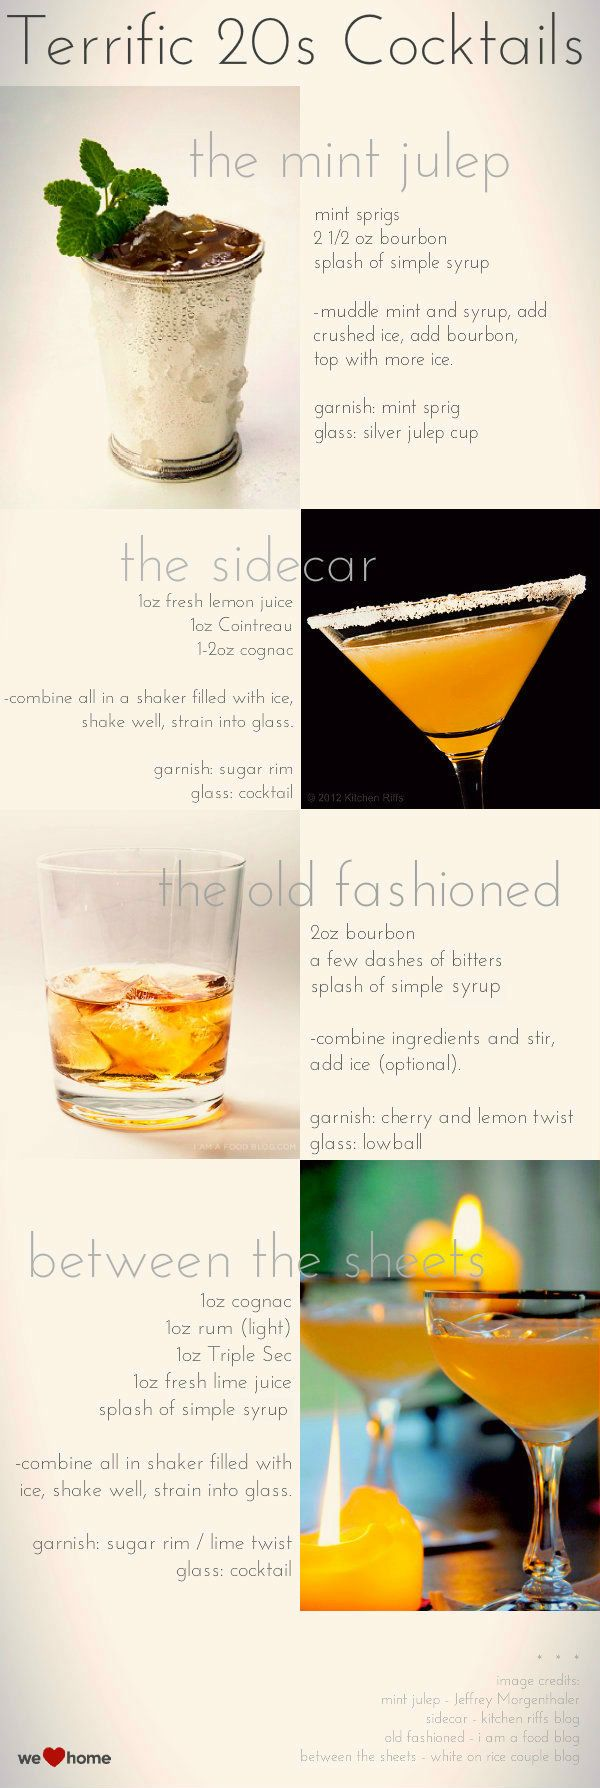 Our Favorite Speak Easy Cocktail Recipes from the Roaring Twenties! Perfect for a Flapper Party